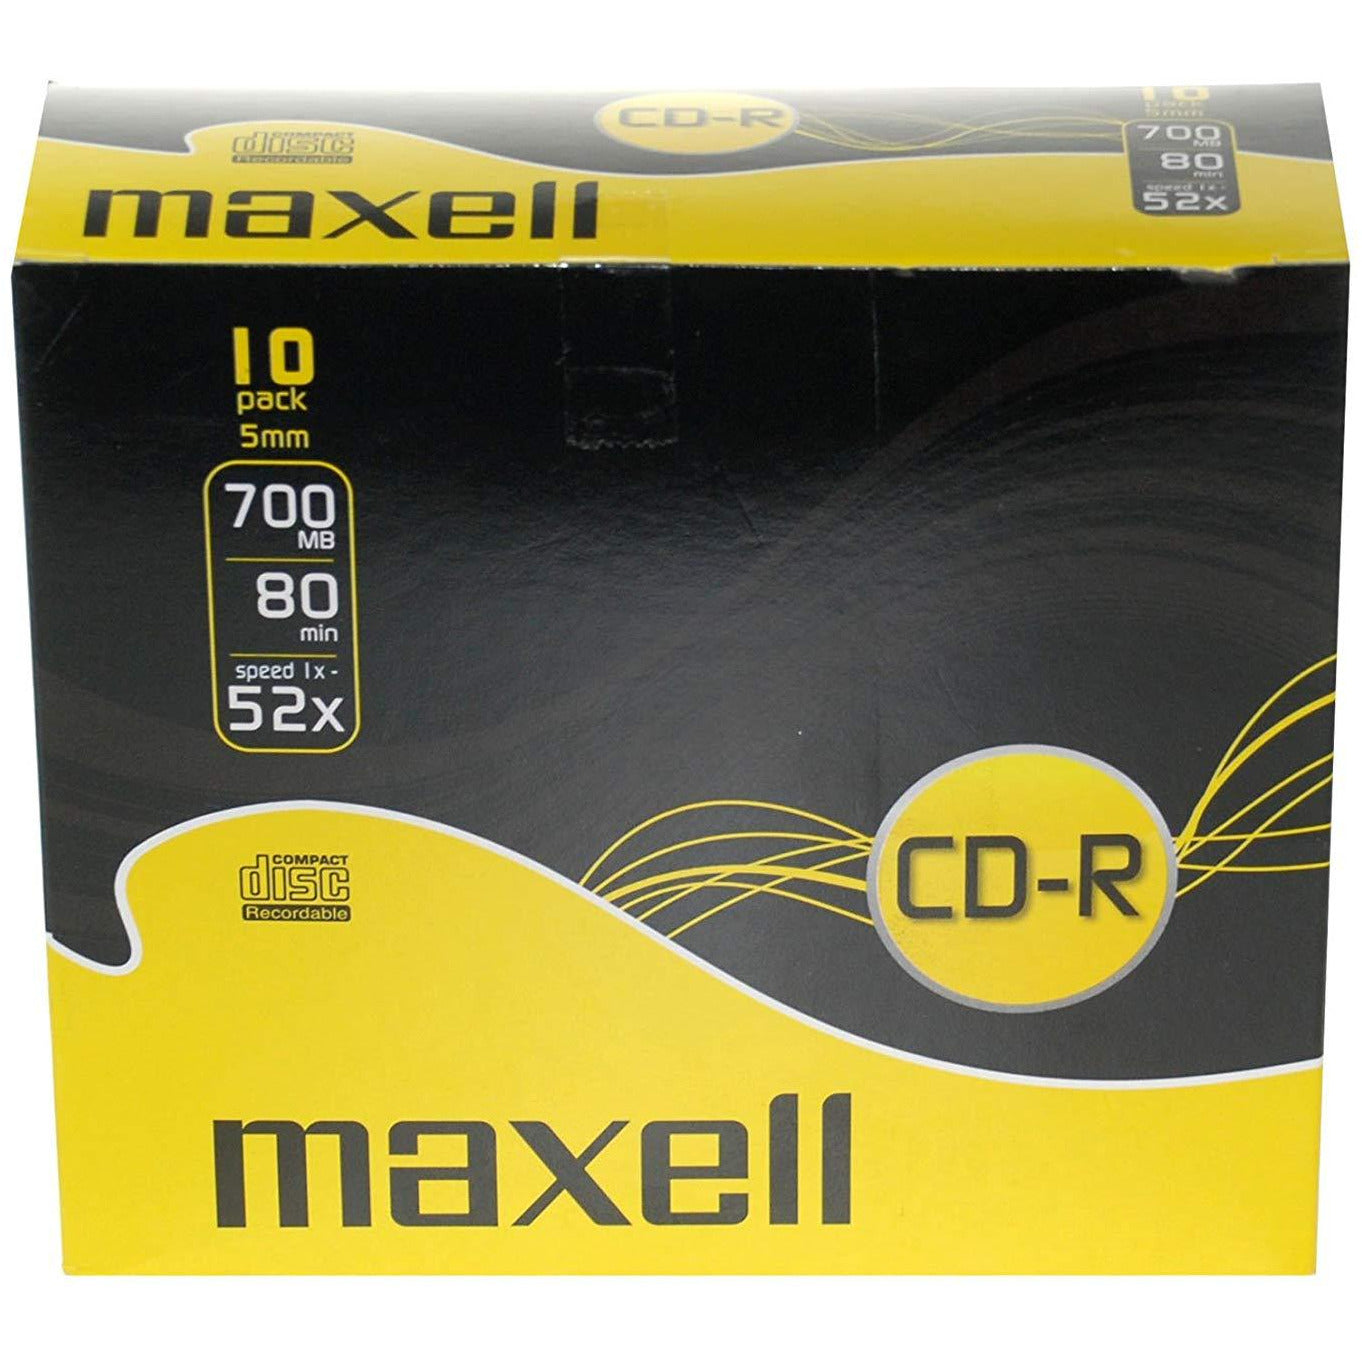 Maxell CD-R compact disc 10 pack [Accessories]